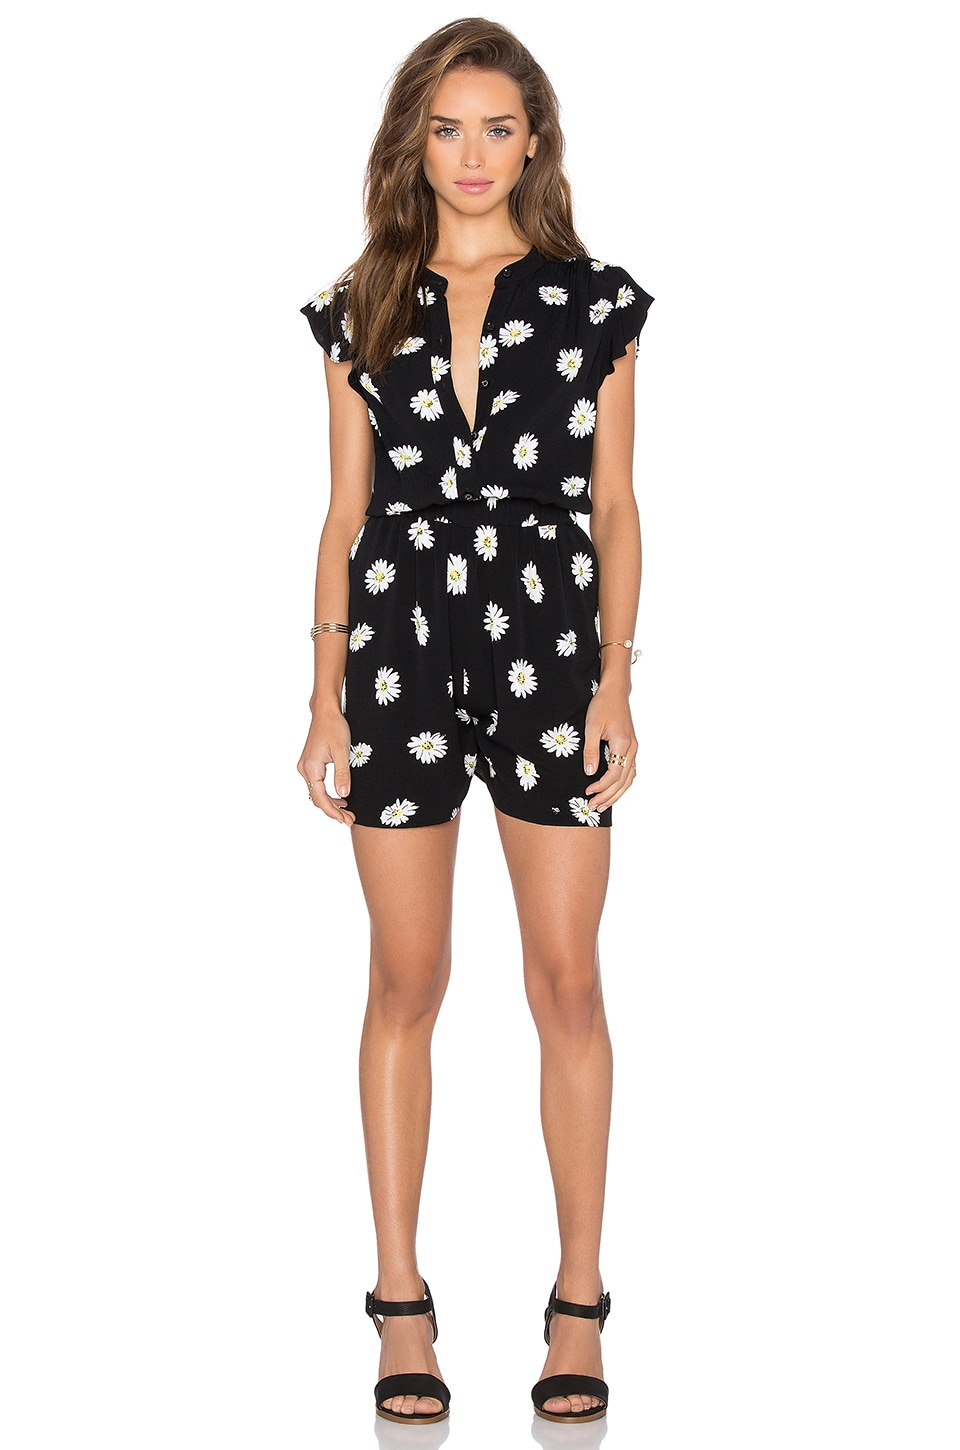 kate spade new york Daisy Dot Crepe Romper in Black